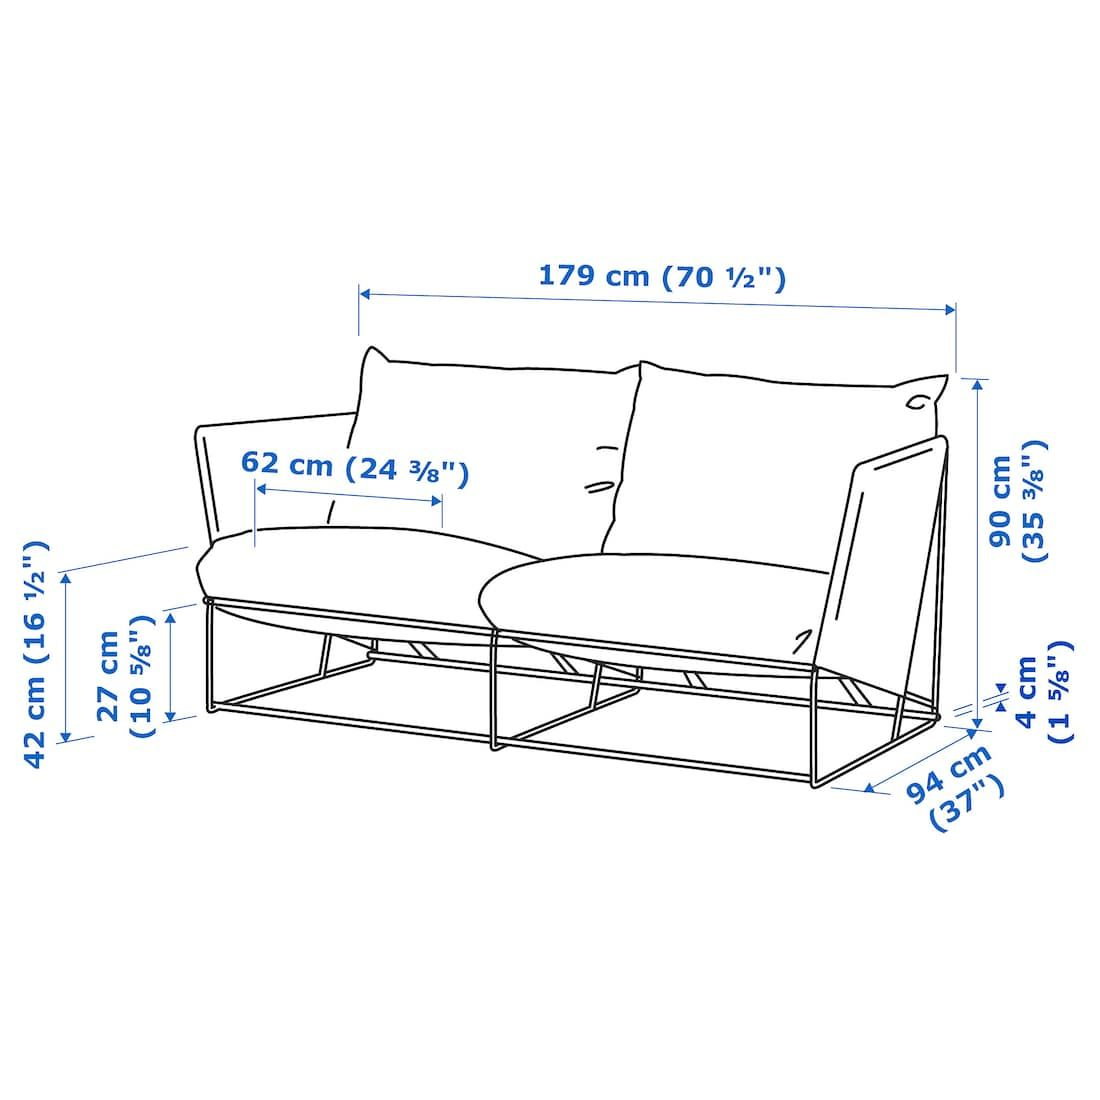 Havsten Loveseat In Outdoor Beige Ikea In 2020 Ikea Love Seat Outdoor Seat Pads